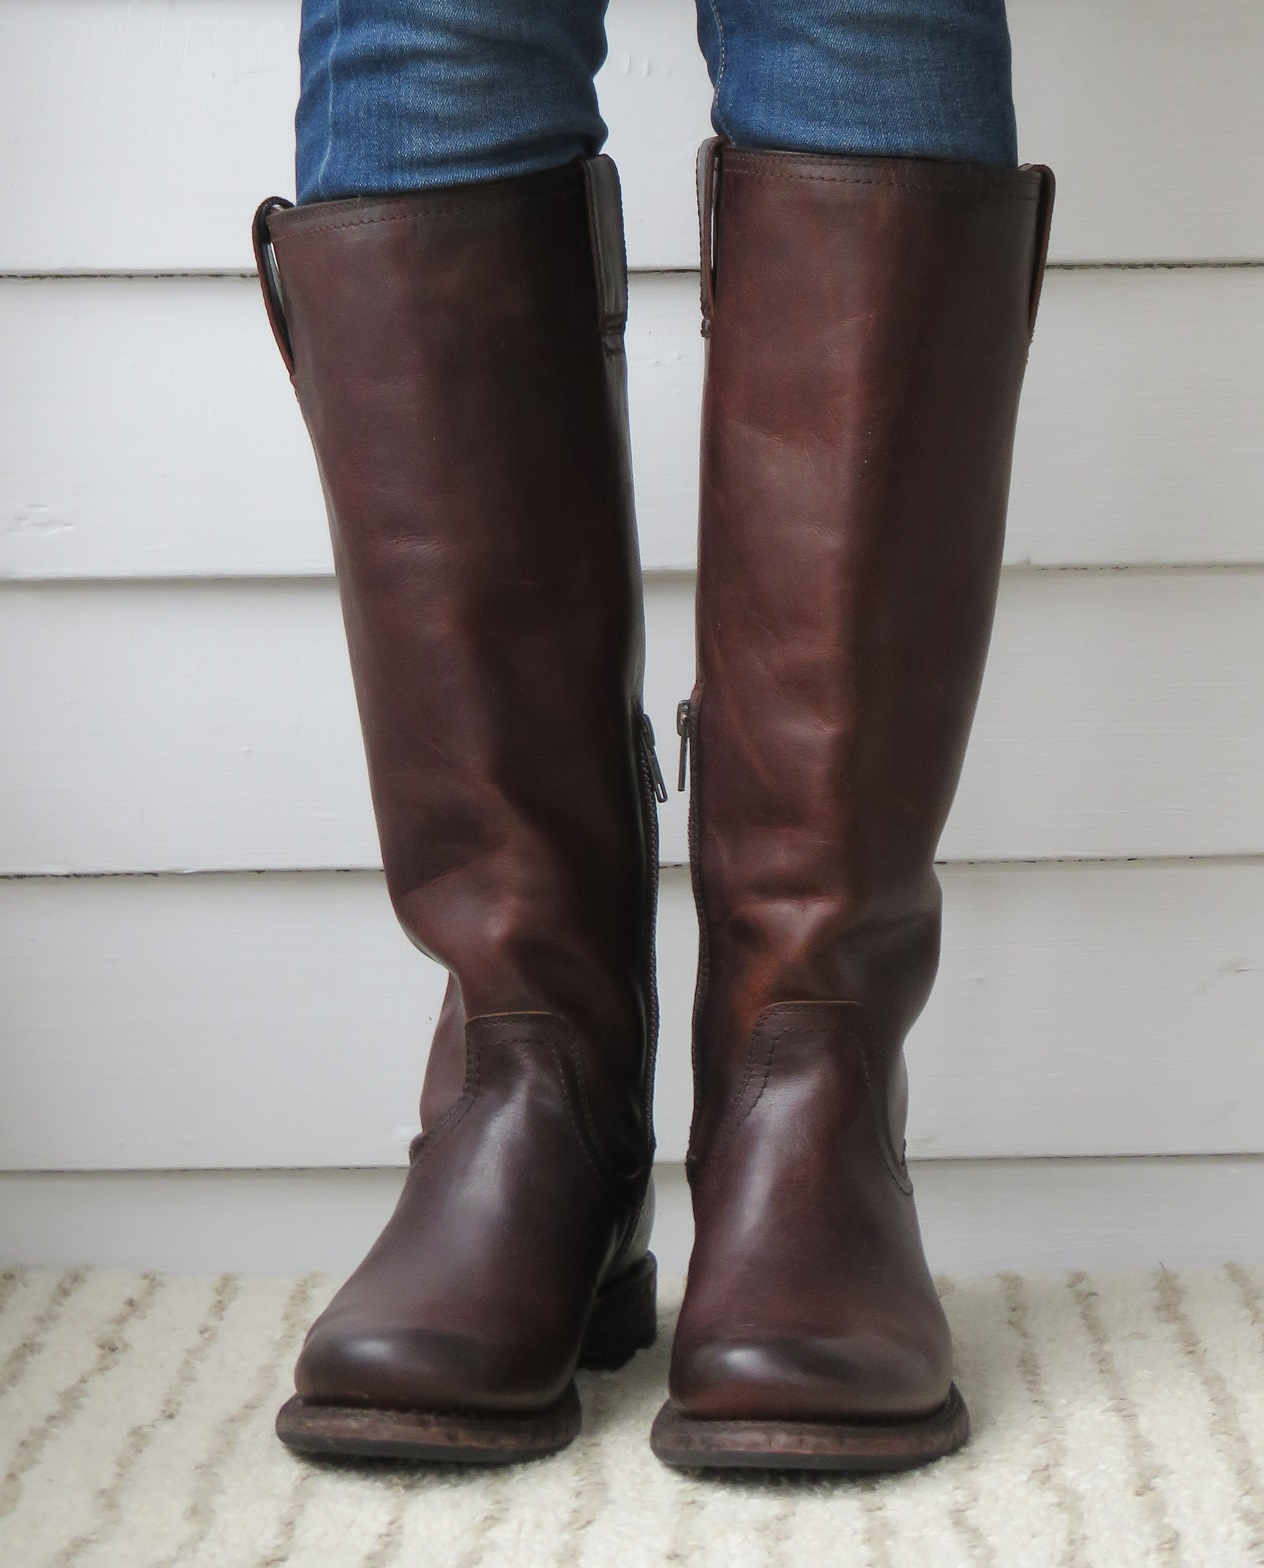 Howdy Slim! Riding Boots for Thin Calves: June 2015